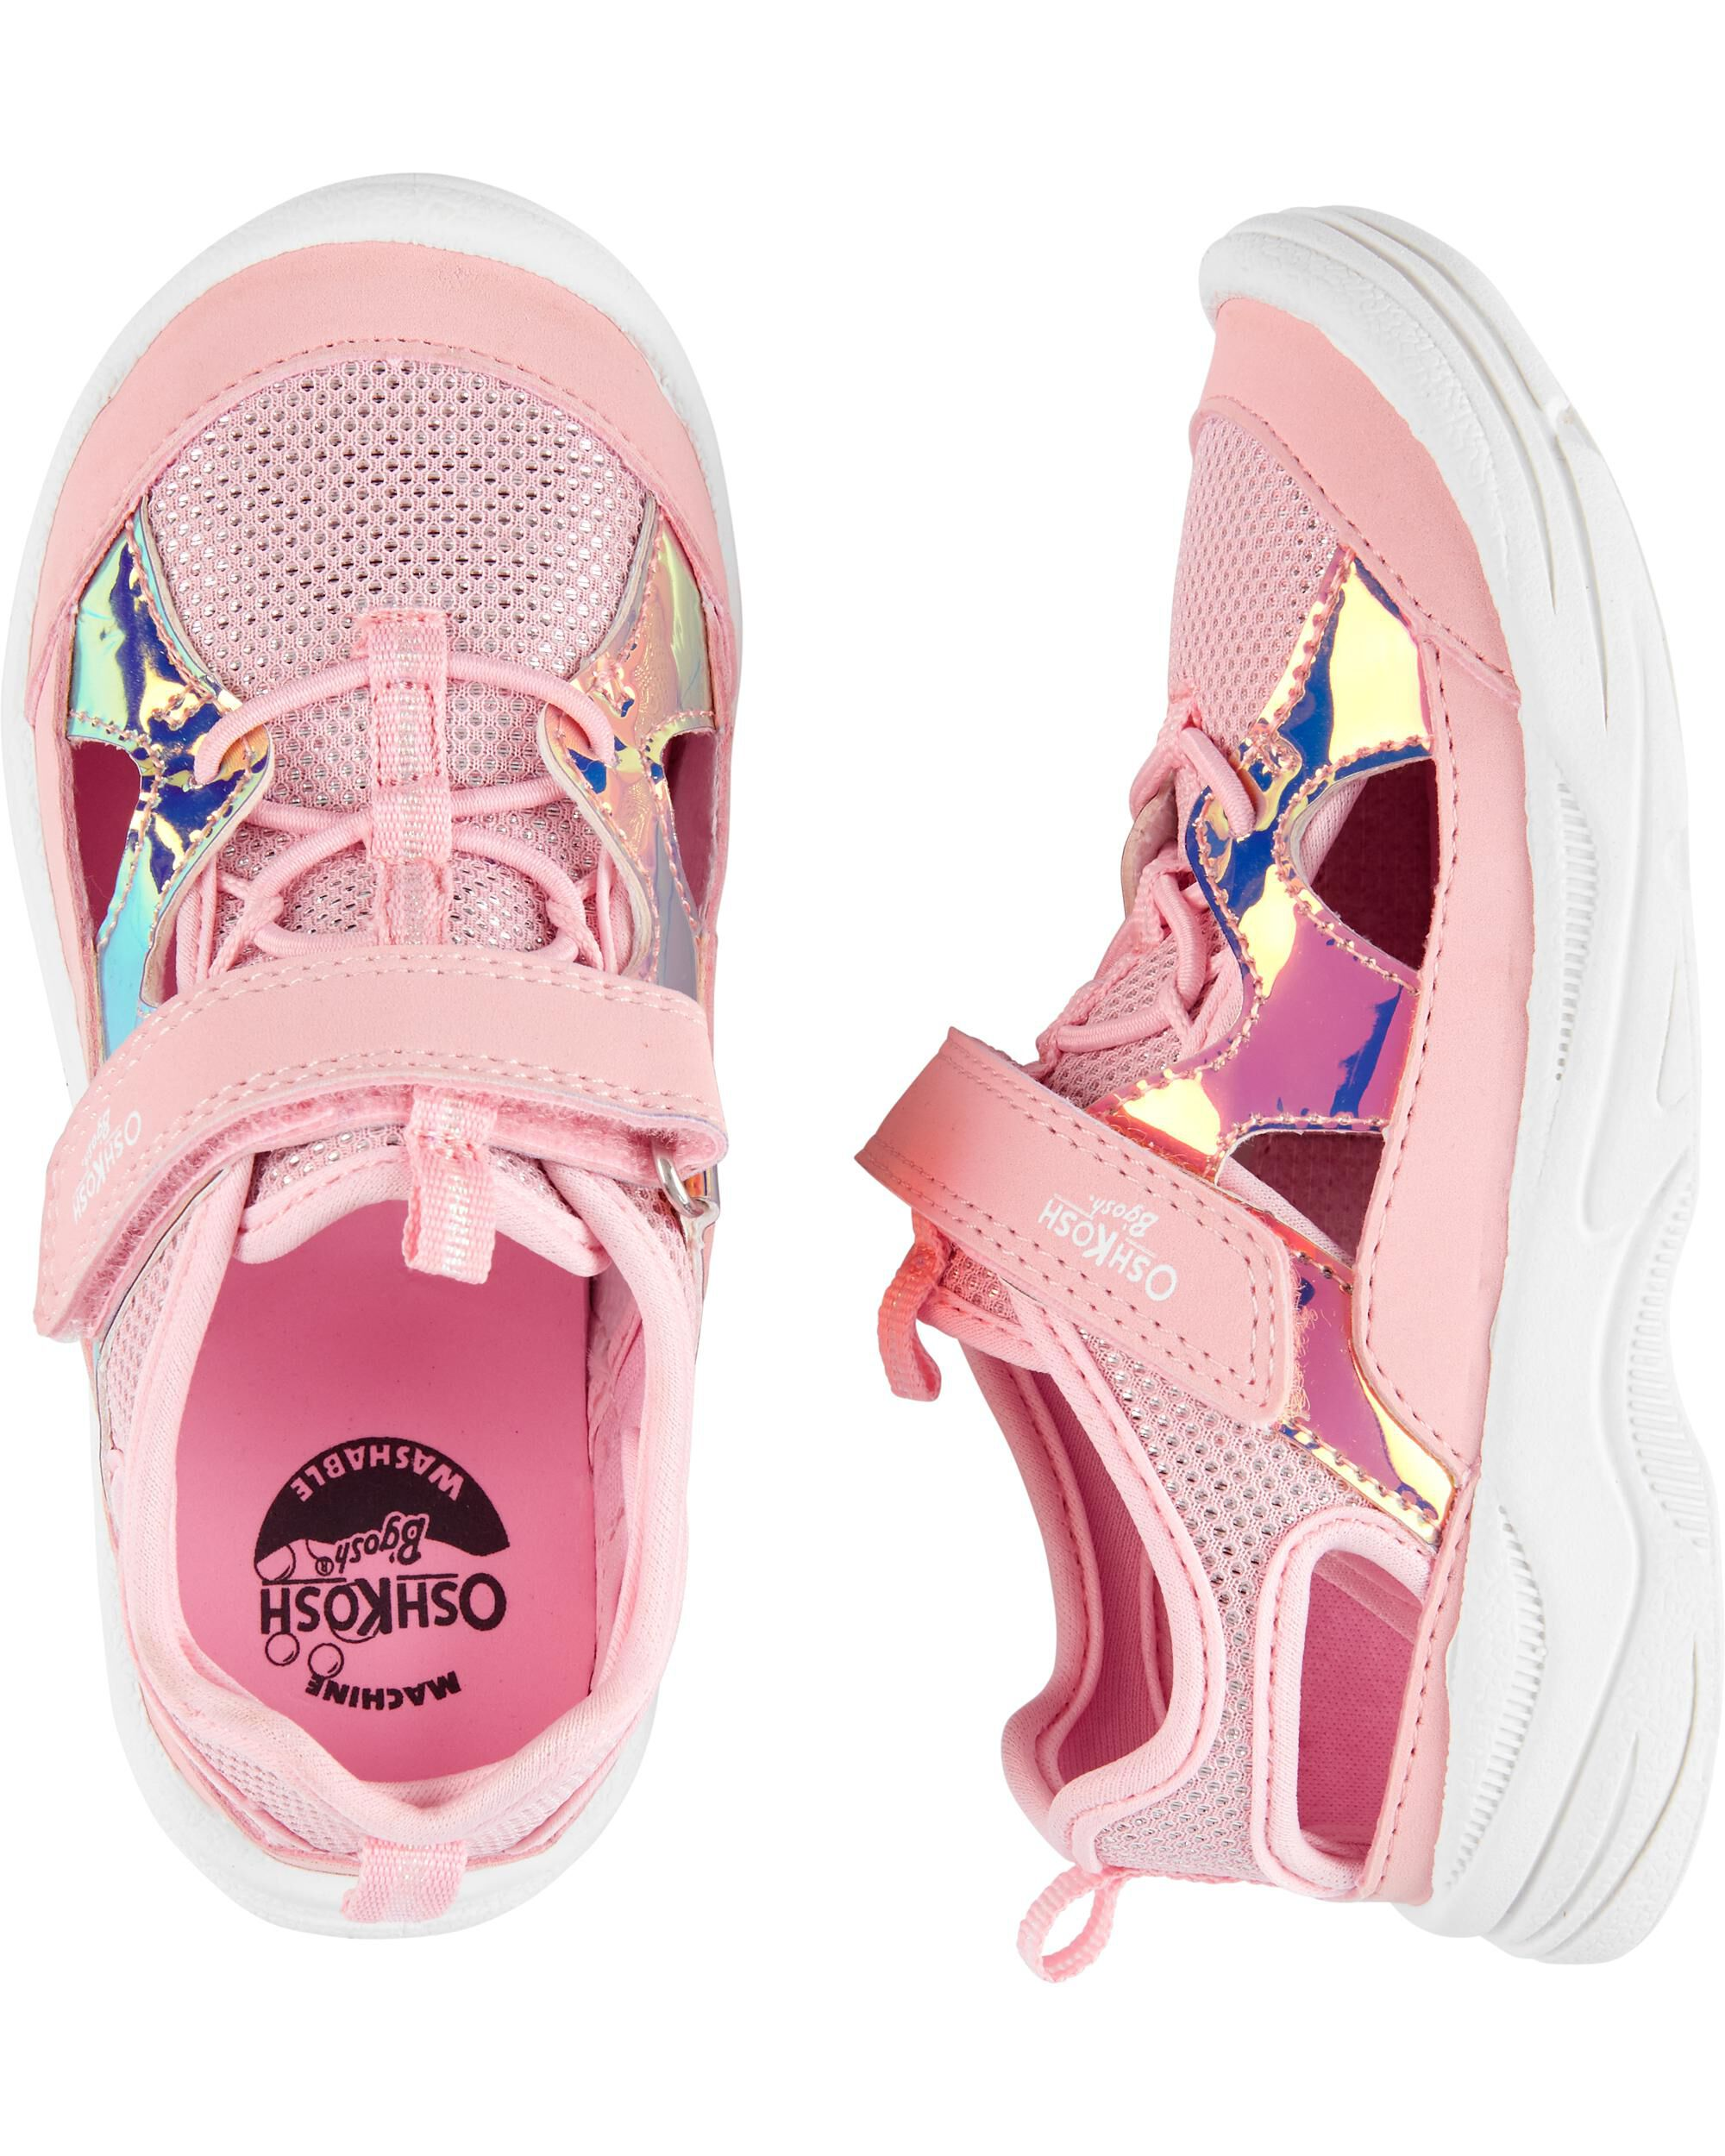 *DOORBUSTER* OshKosh Holographic Bump Toe Athletic Sneakers